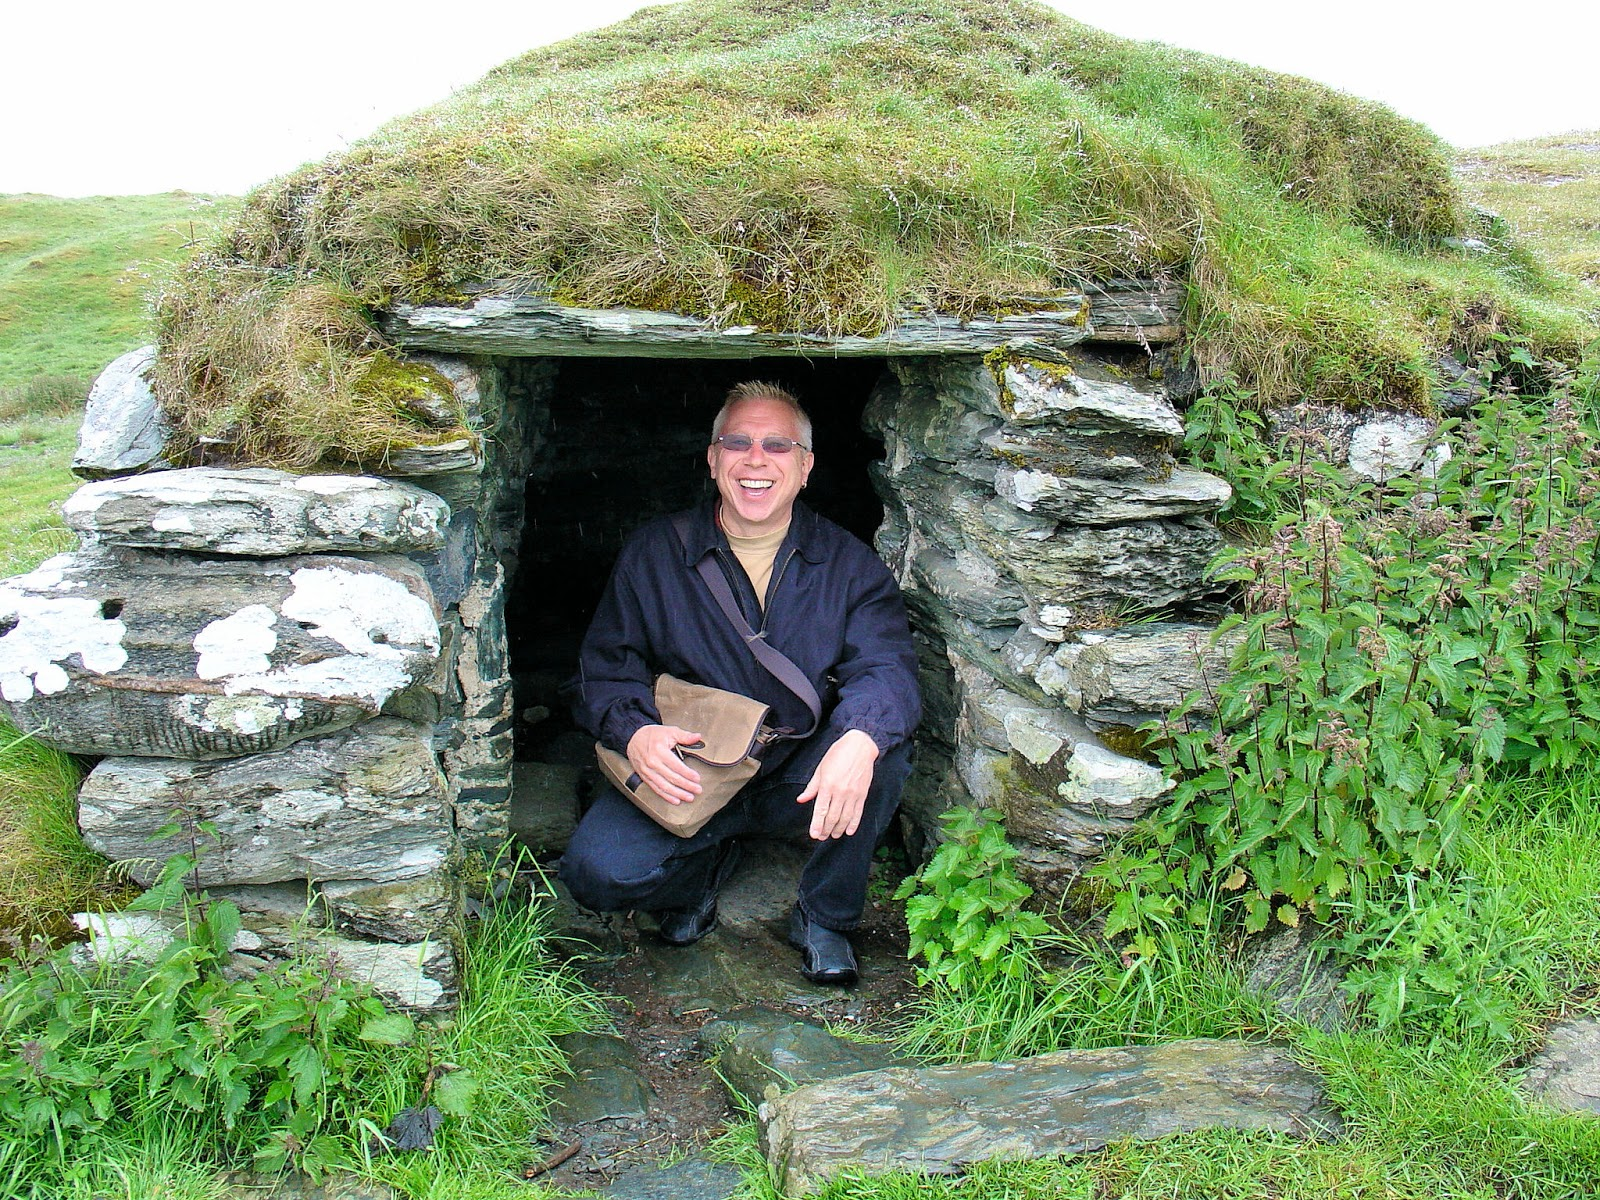 I bid you farewell from inside the potato cellar on Gloppehavn, just outside the Viking settlement. The cellar remained frostproof in the winter and cool in summer.